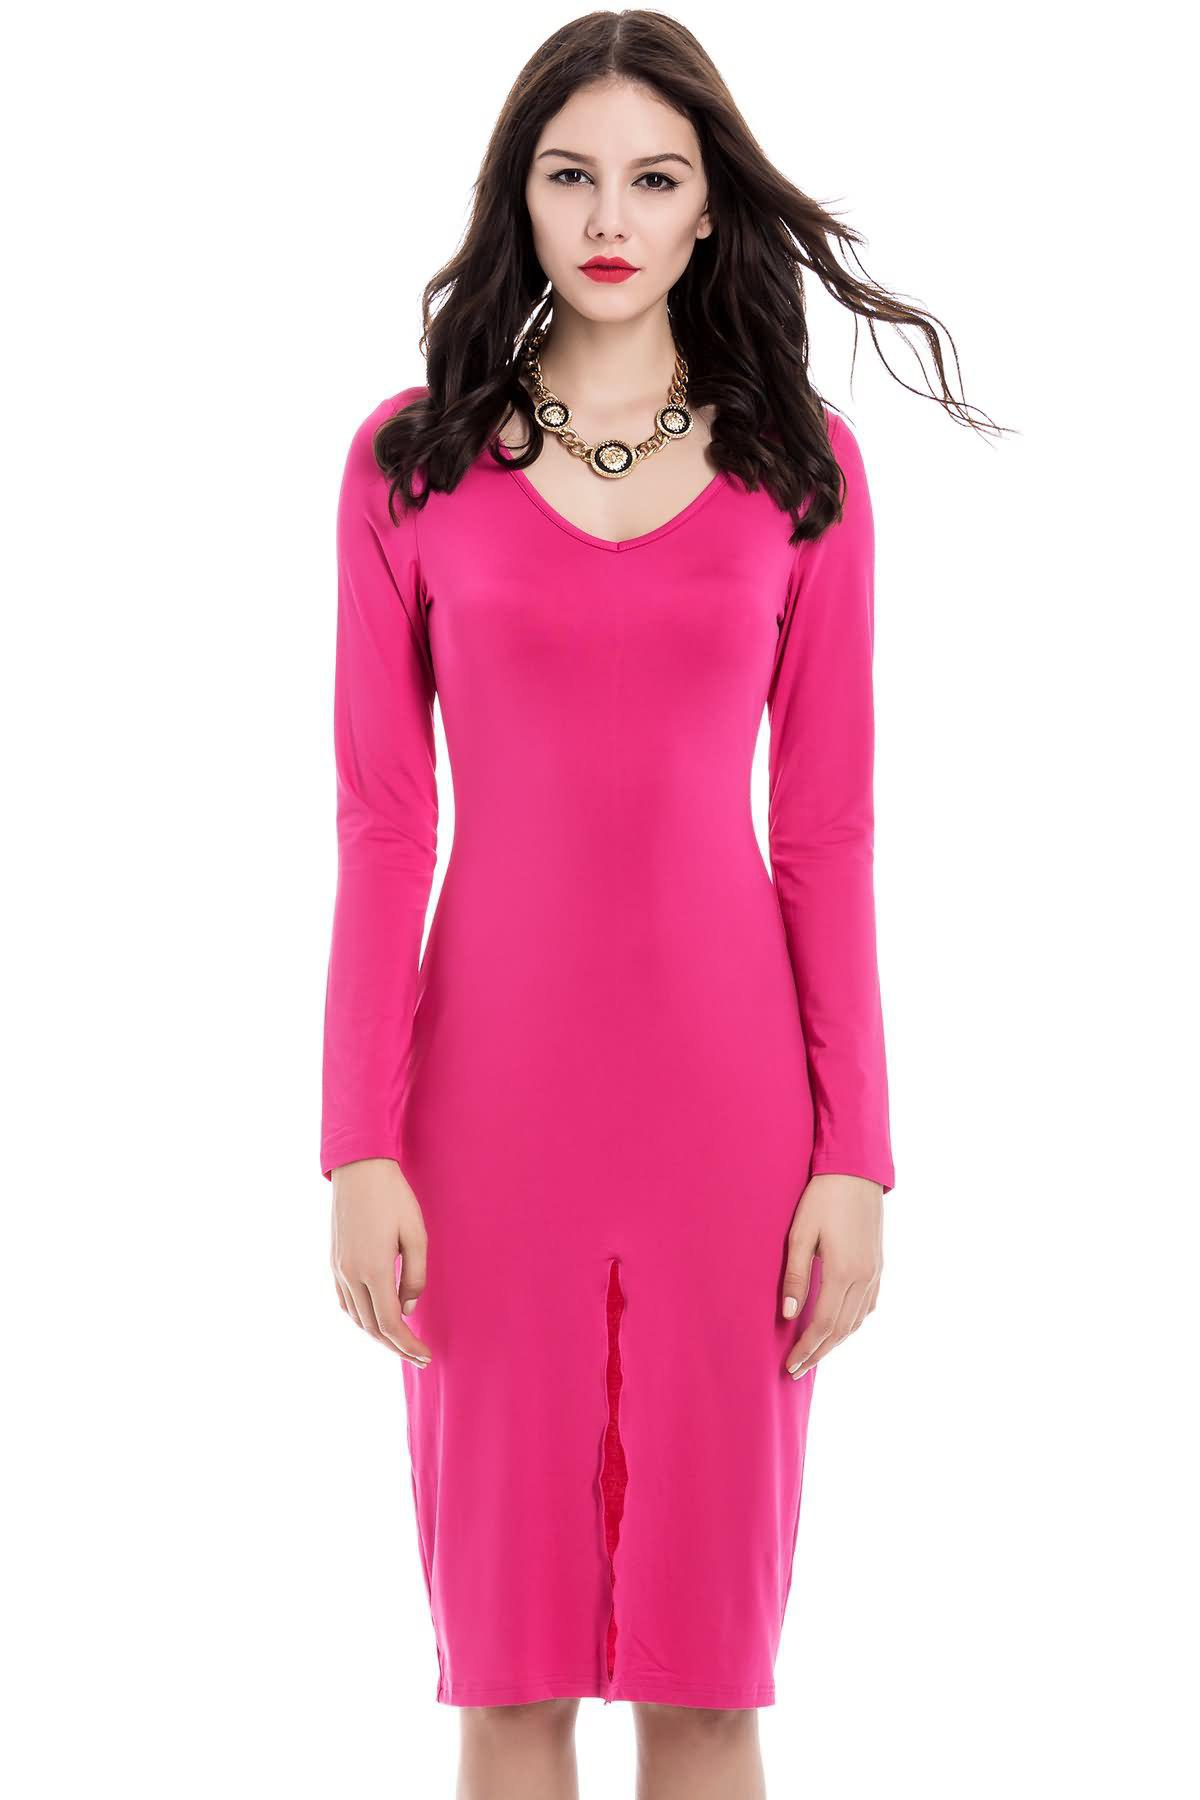 Rose Madder S Sexy Front Split Design Long Sleeve Plunging